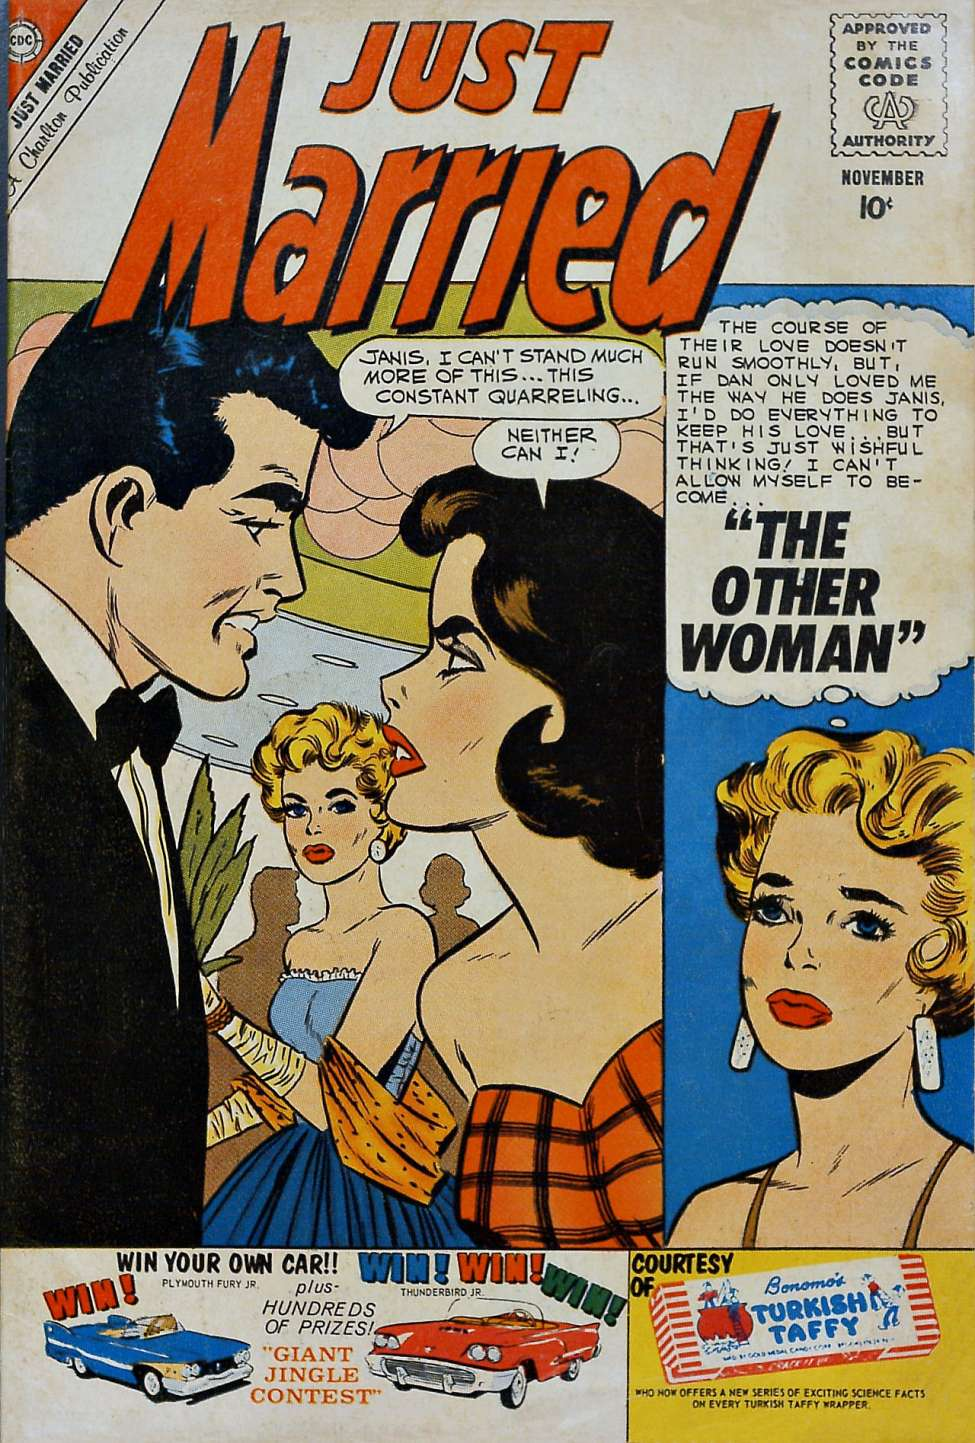 Comic Book Cover For Just Married #16